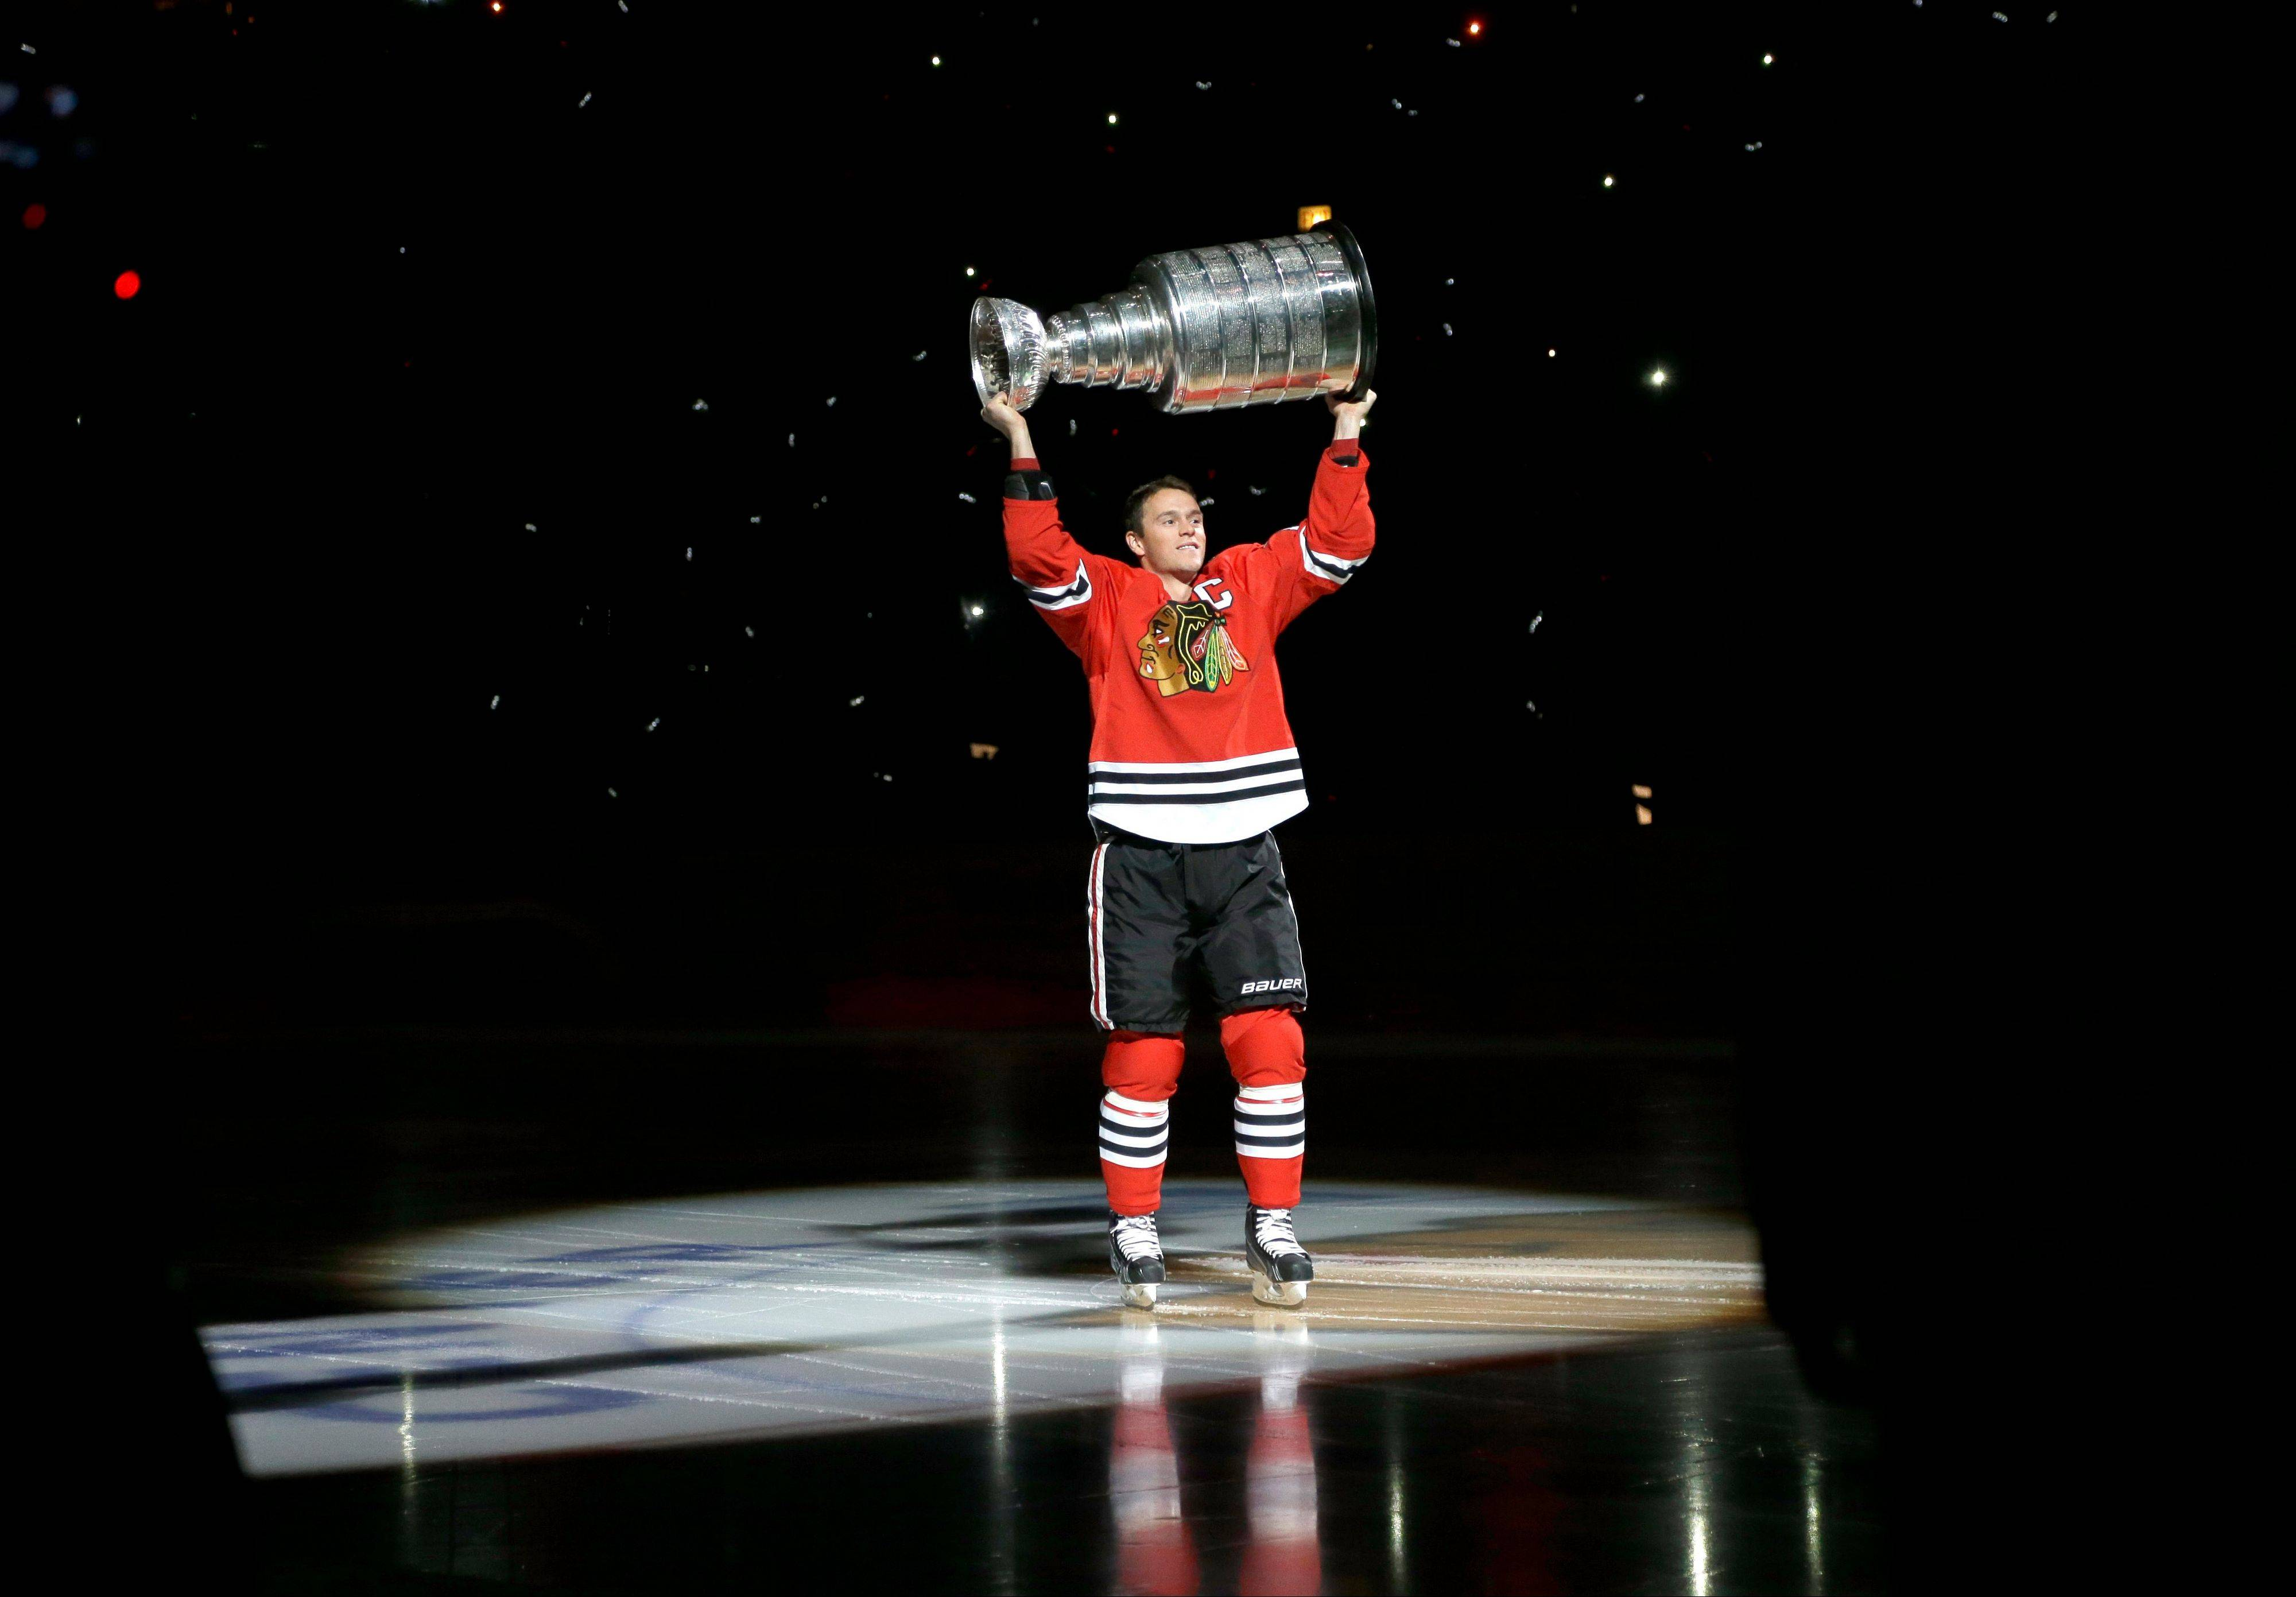 Blackhawks center Jonathan Toews carries out the Stanley Cup during a banner raising ceremony before an NHL hockey game between the Blackhawks and the Washington Capitals, Tuesday, Oct. 1, 2013, in Chicago.